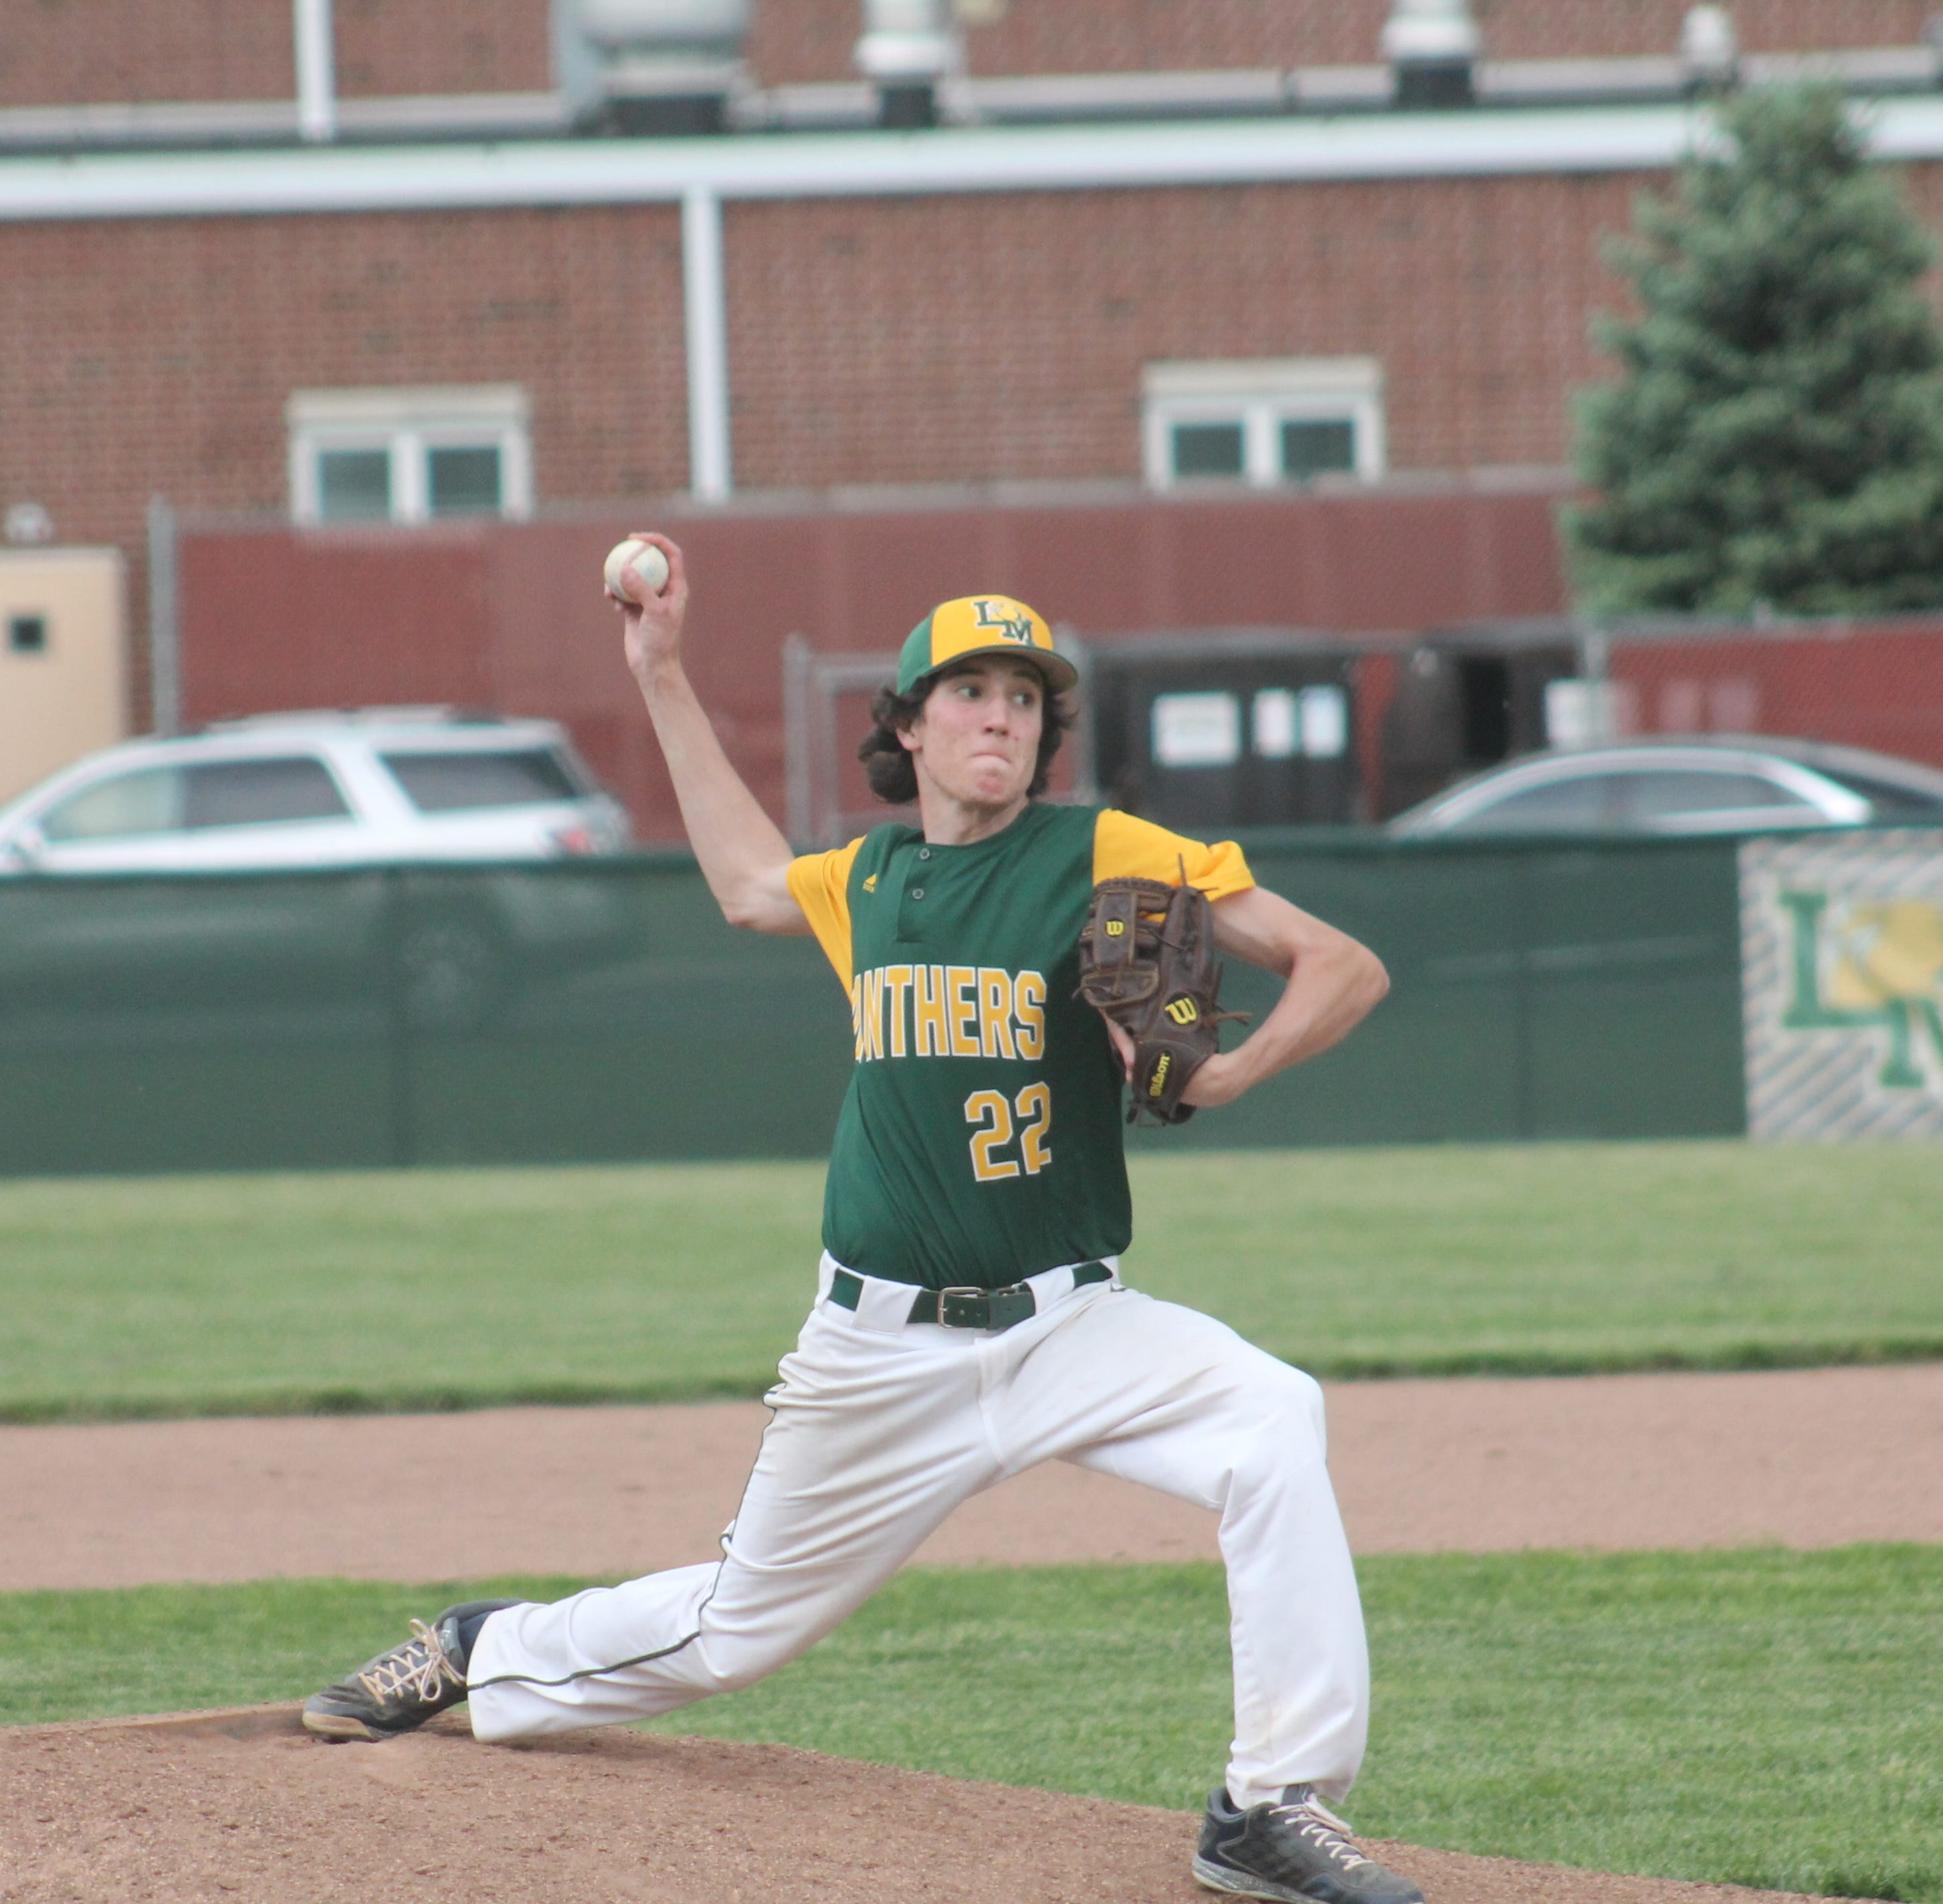 Grayson Wells hurls it home in relief for Little Miami May 7. The Panthers prevailed 8-2